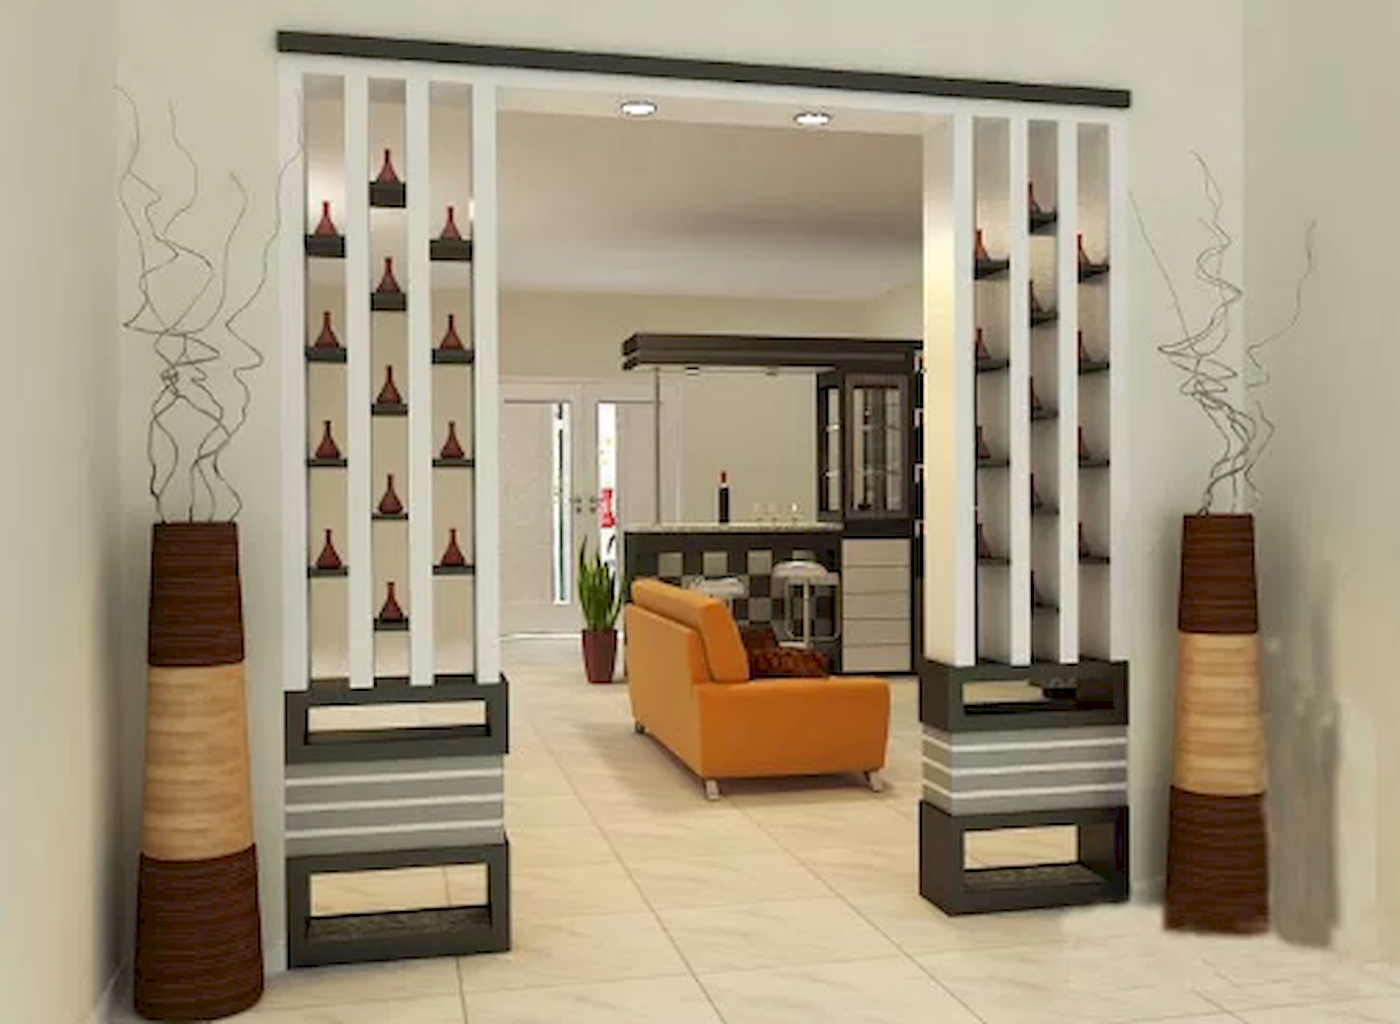 Fantastic Amazing Design Of The Partition Beautiful Space Living Room Partition Design Modern Room Divider Living Room Partition #room #divider #living #room